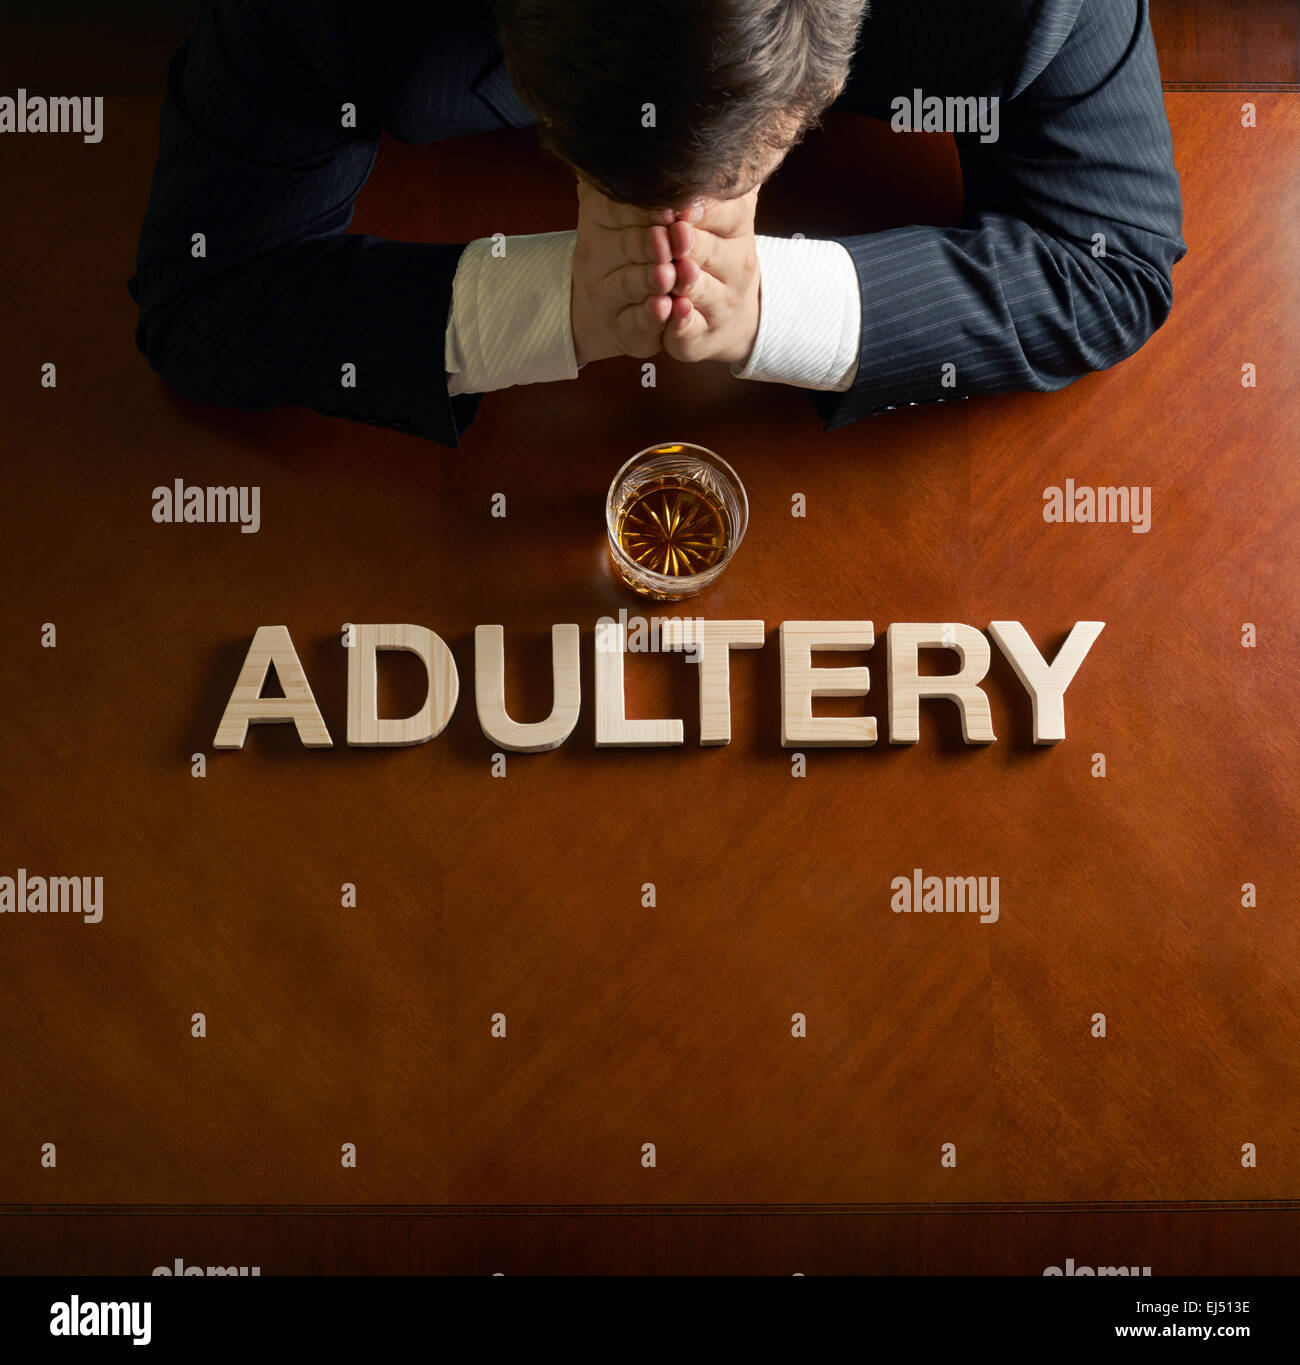 Word Adultery and devastated man composition - Stock Image